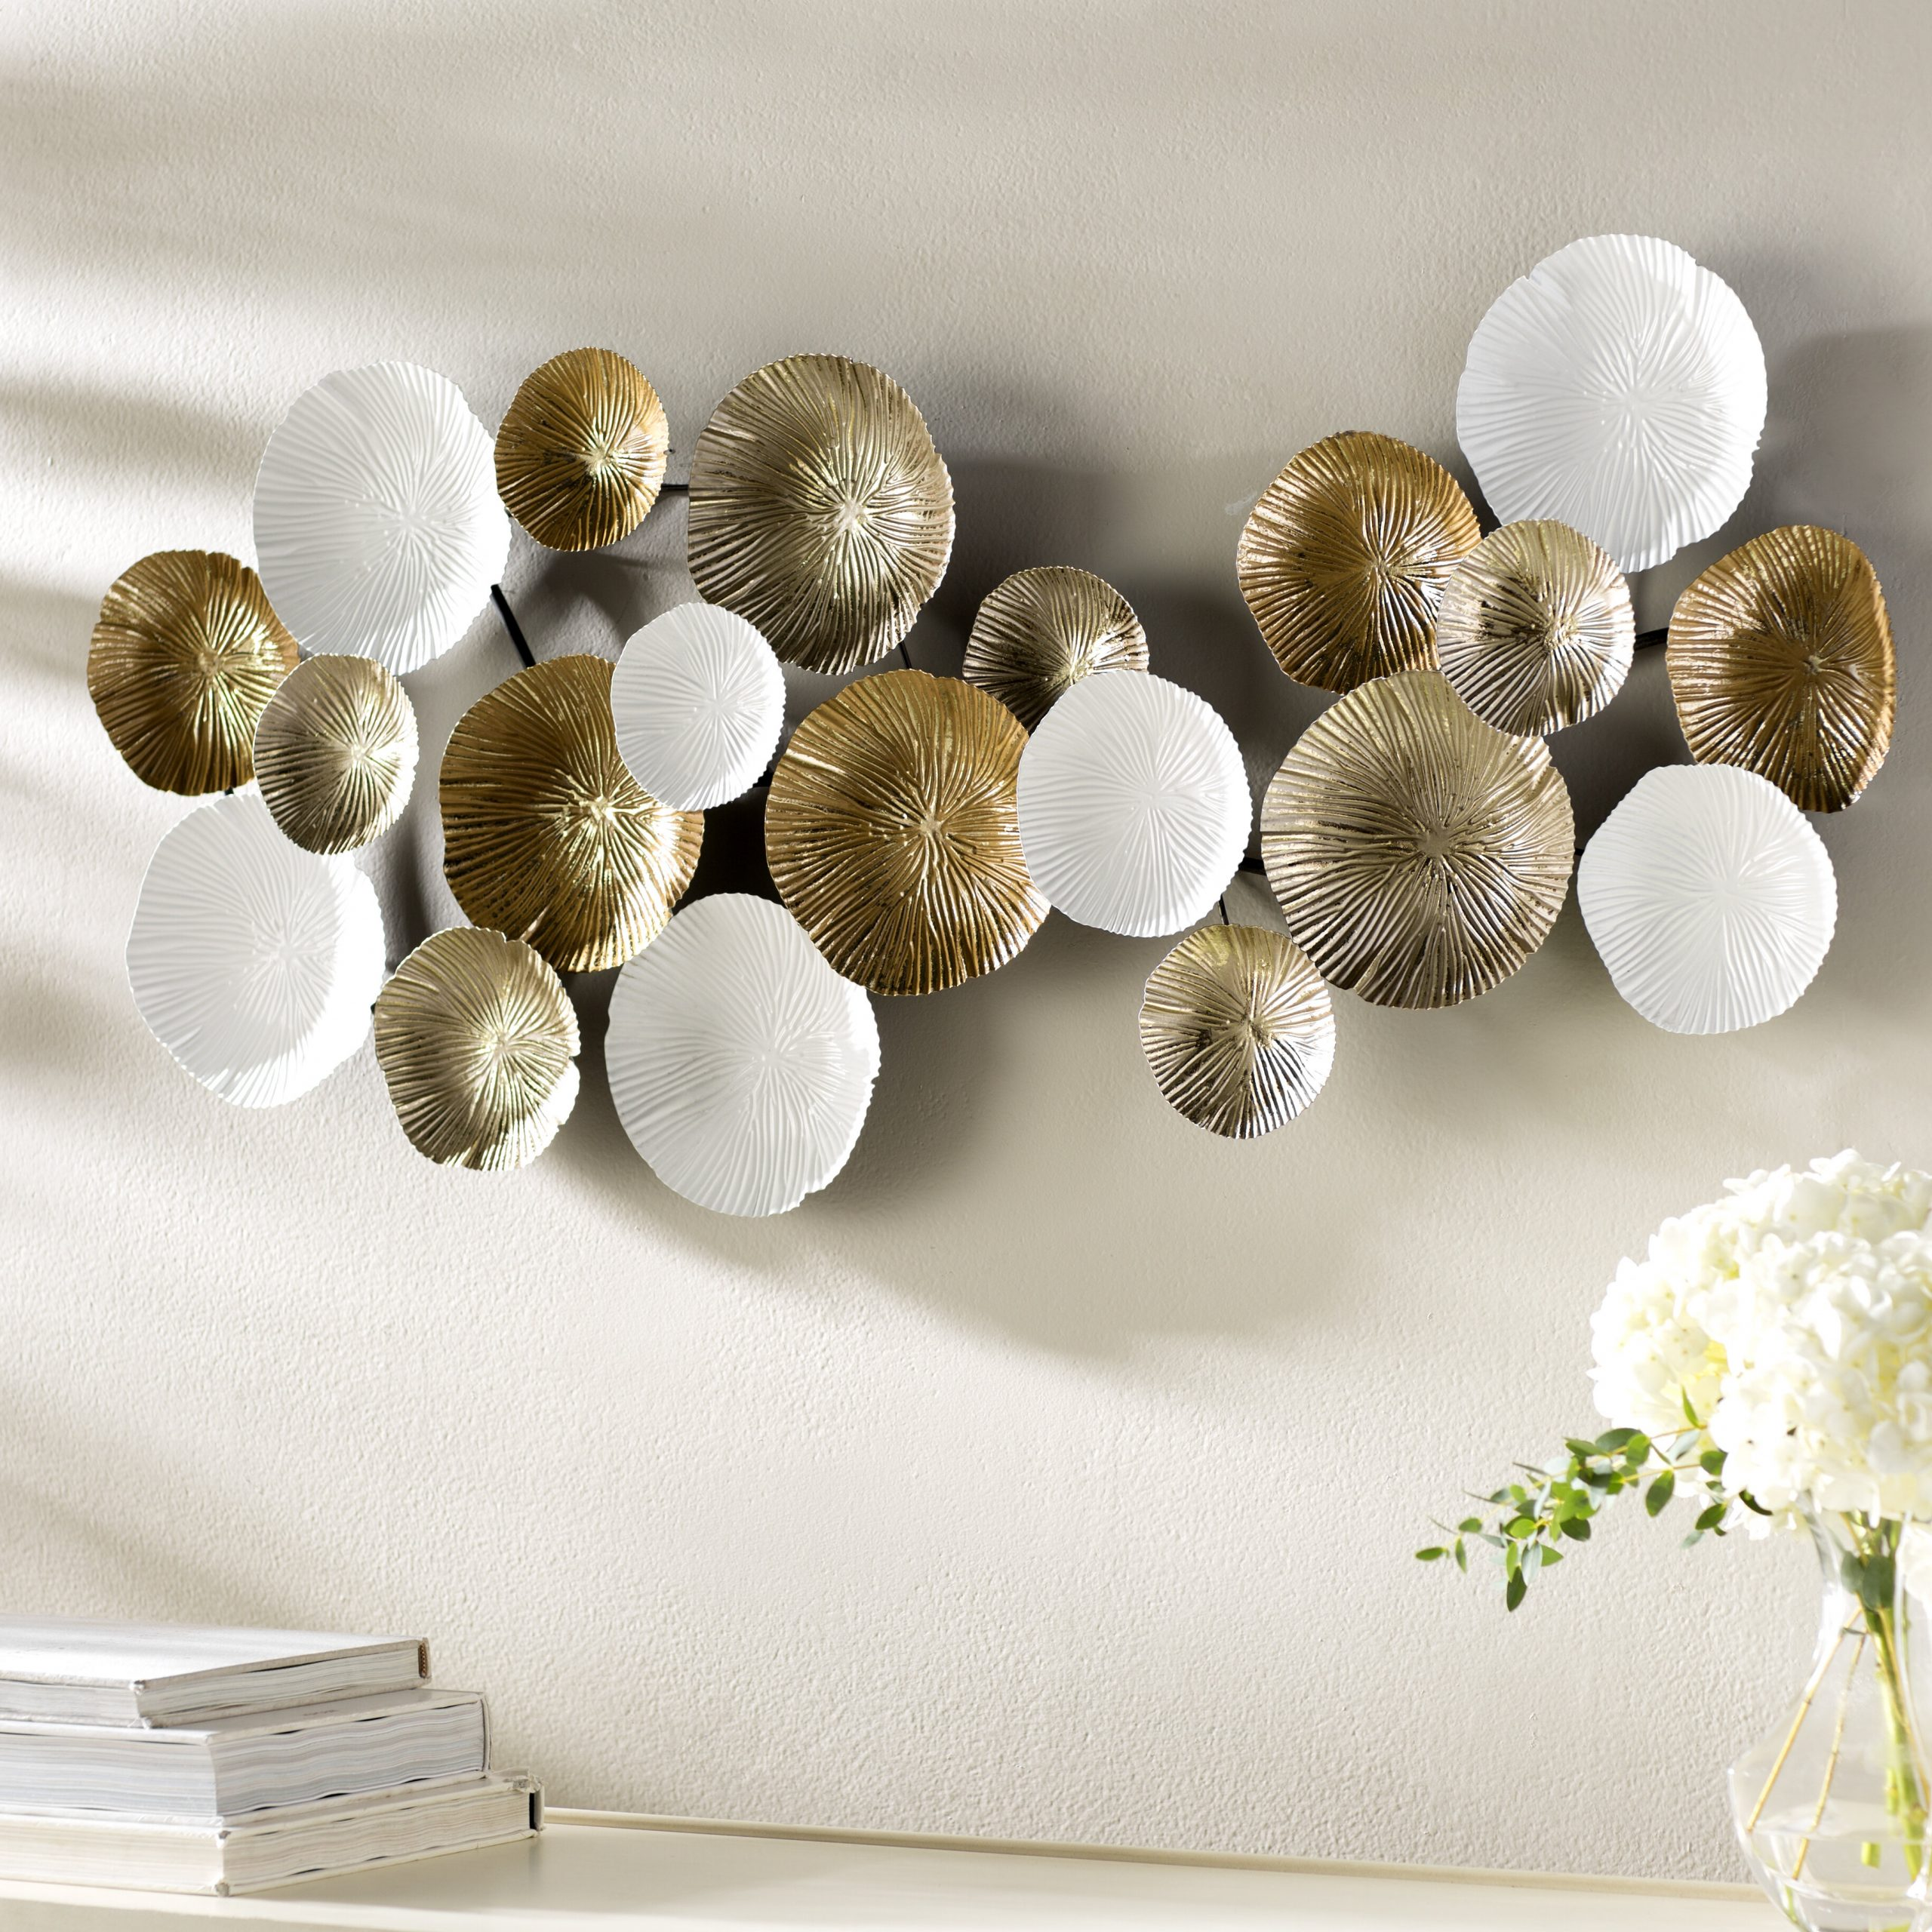 Multi Circles Metal Wall Décor Intended For Popular Metal Capiz Wall Decor By Wrought Studio (Gallery 3 of 20)